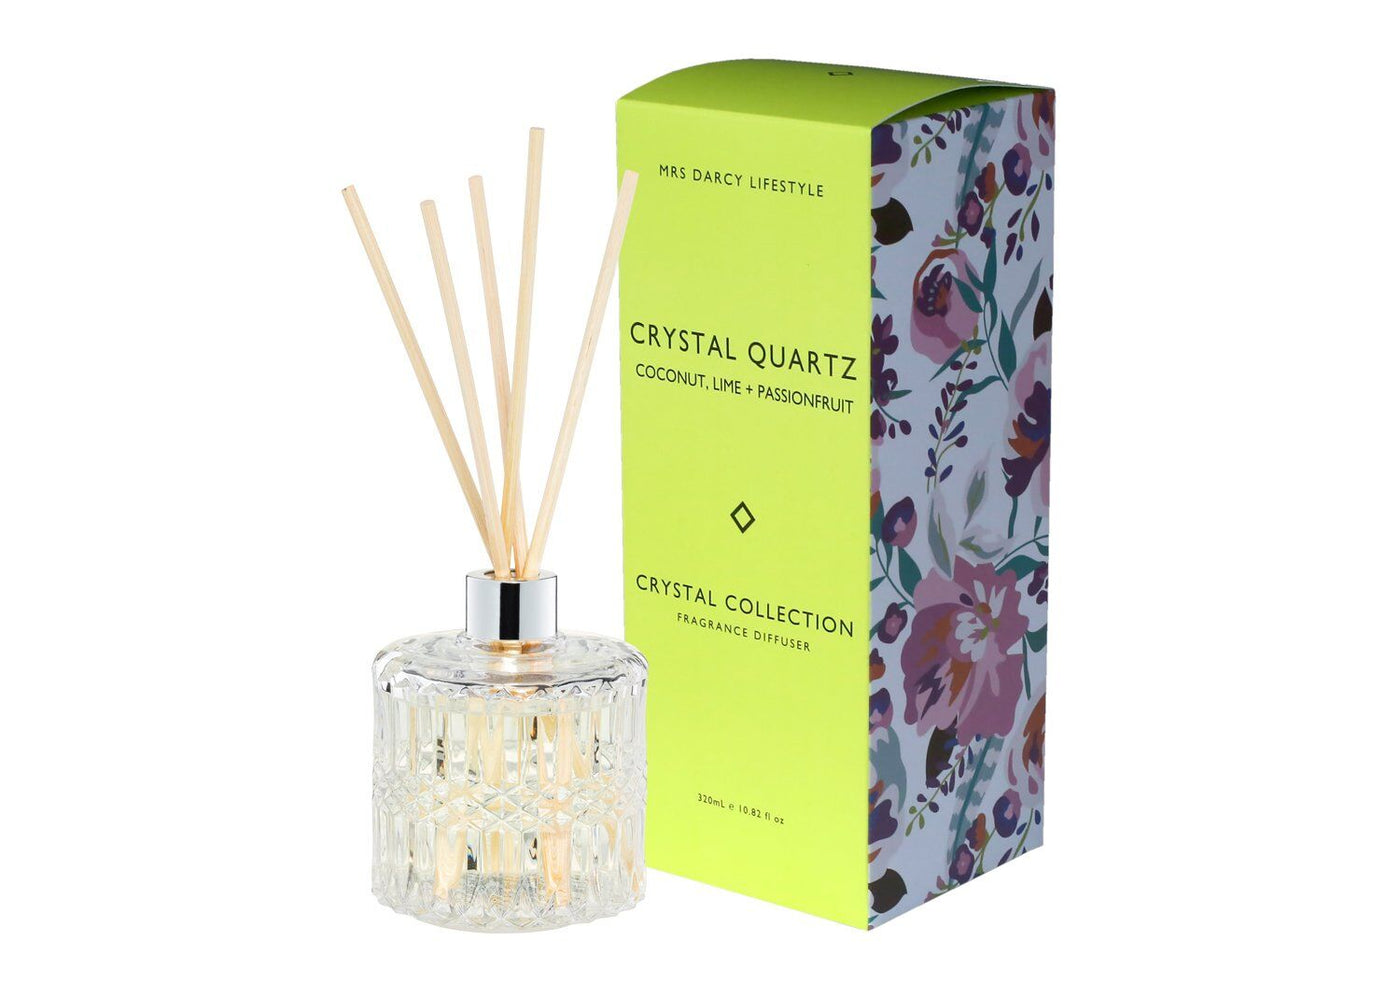 Crystal Quartz Diffuser - Coconut, Lime + Passionfruit